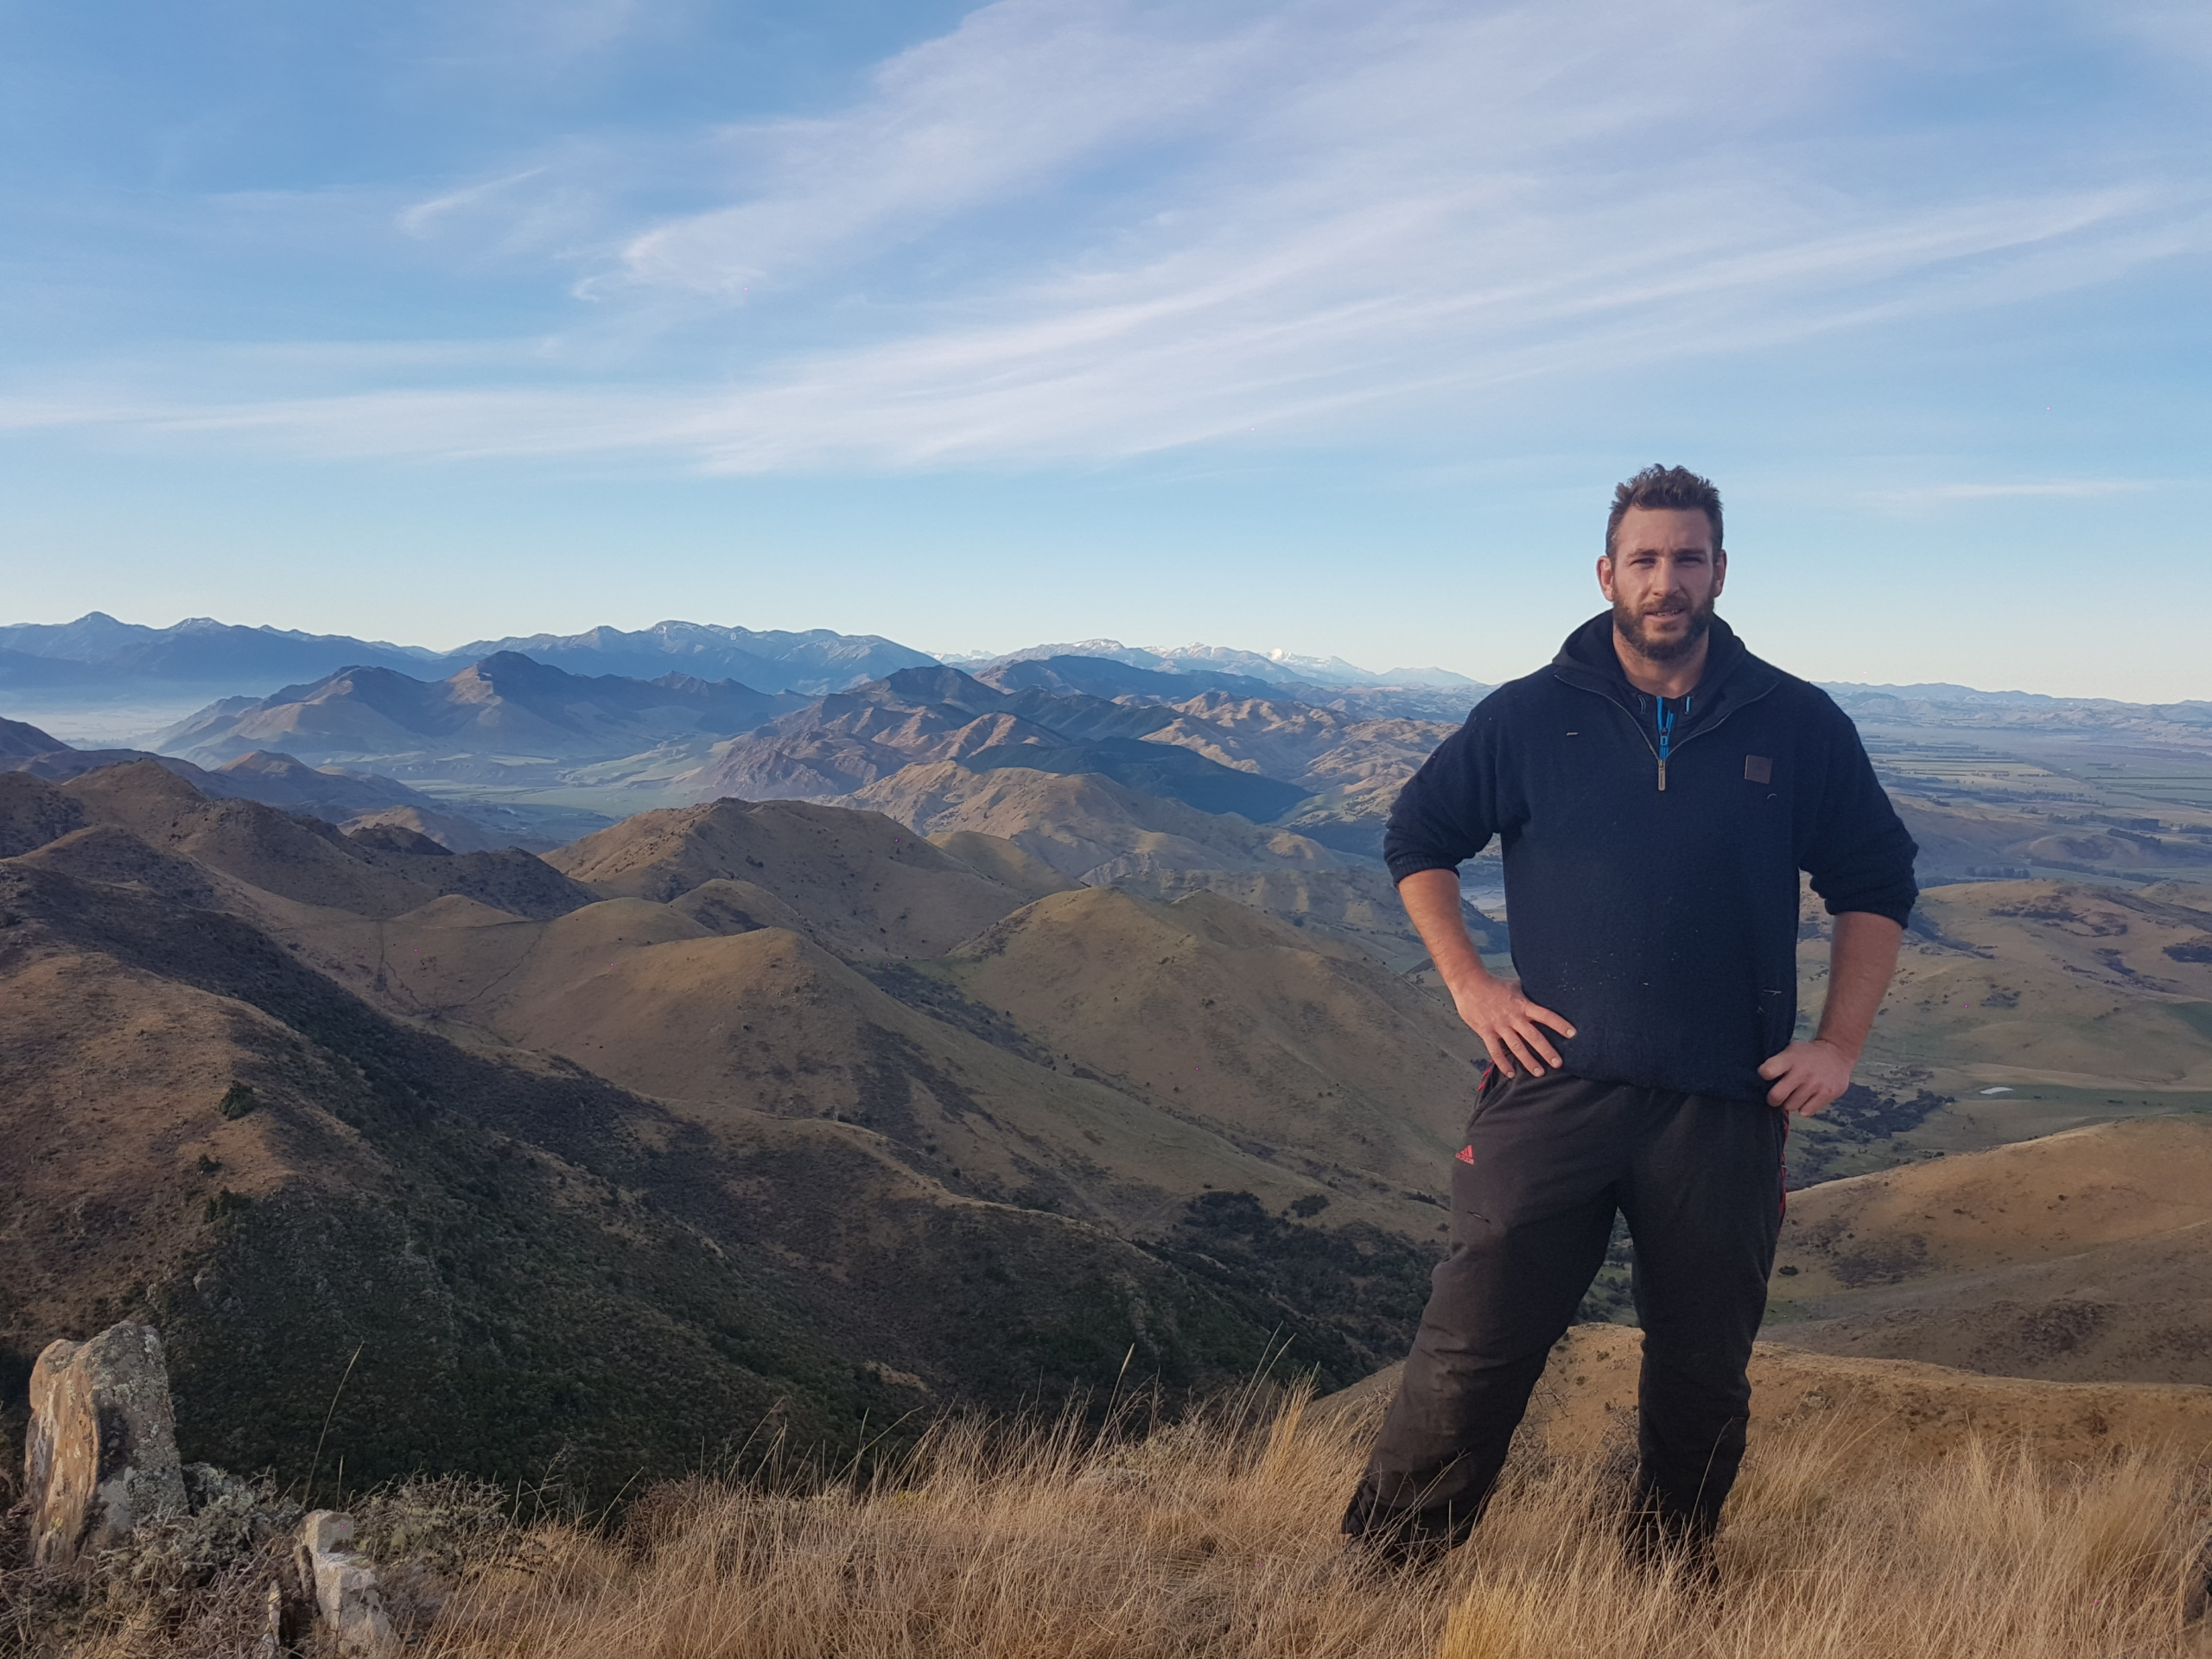 All Black Luke Romano launches luxury adventure tourism brand Monarch Pursuits